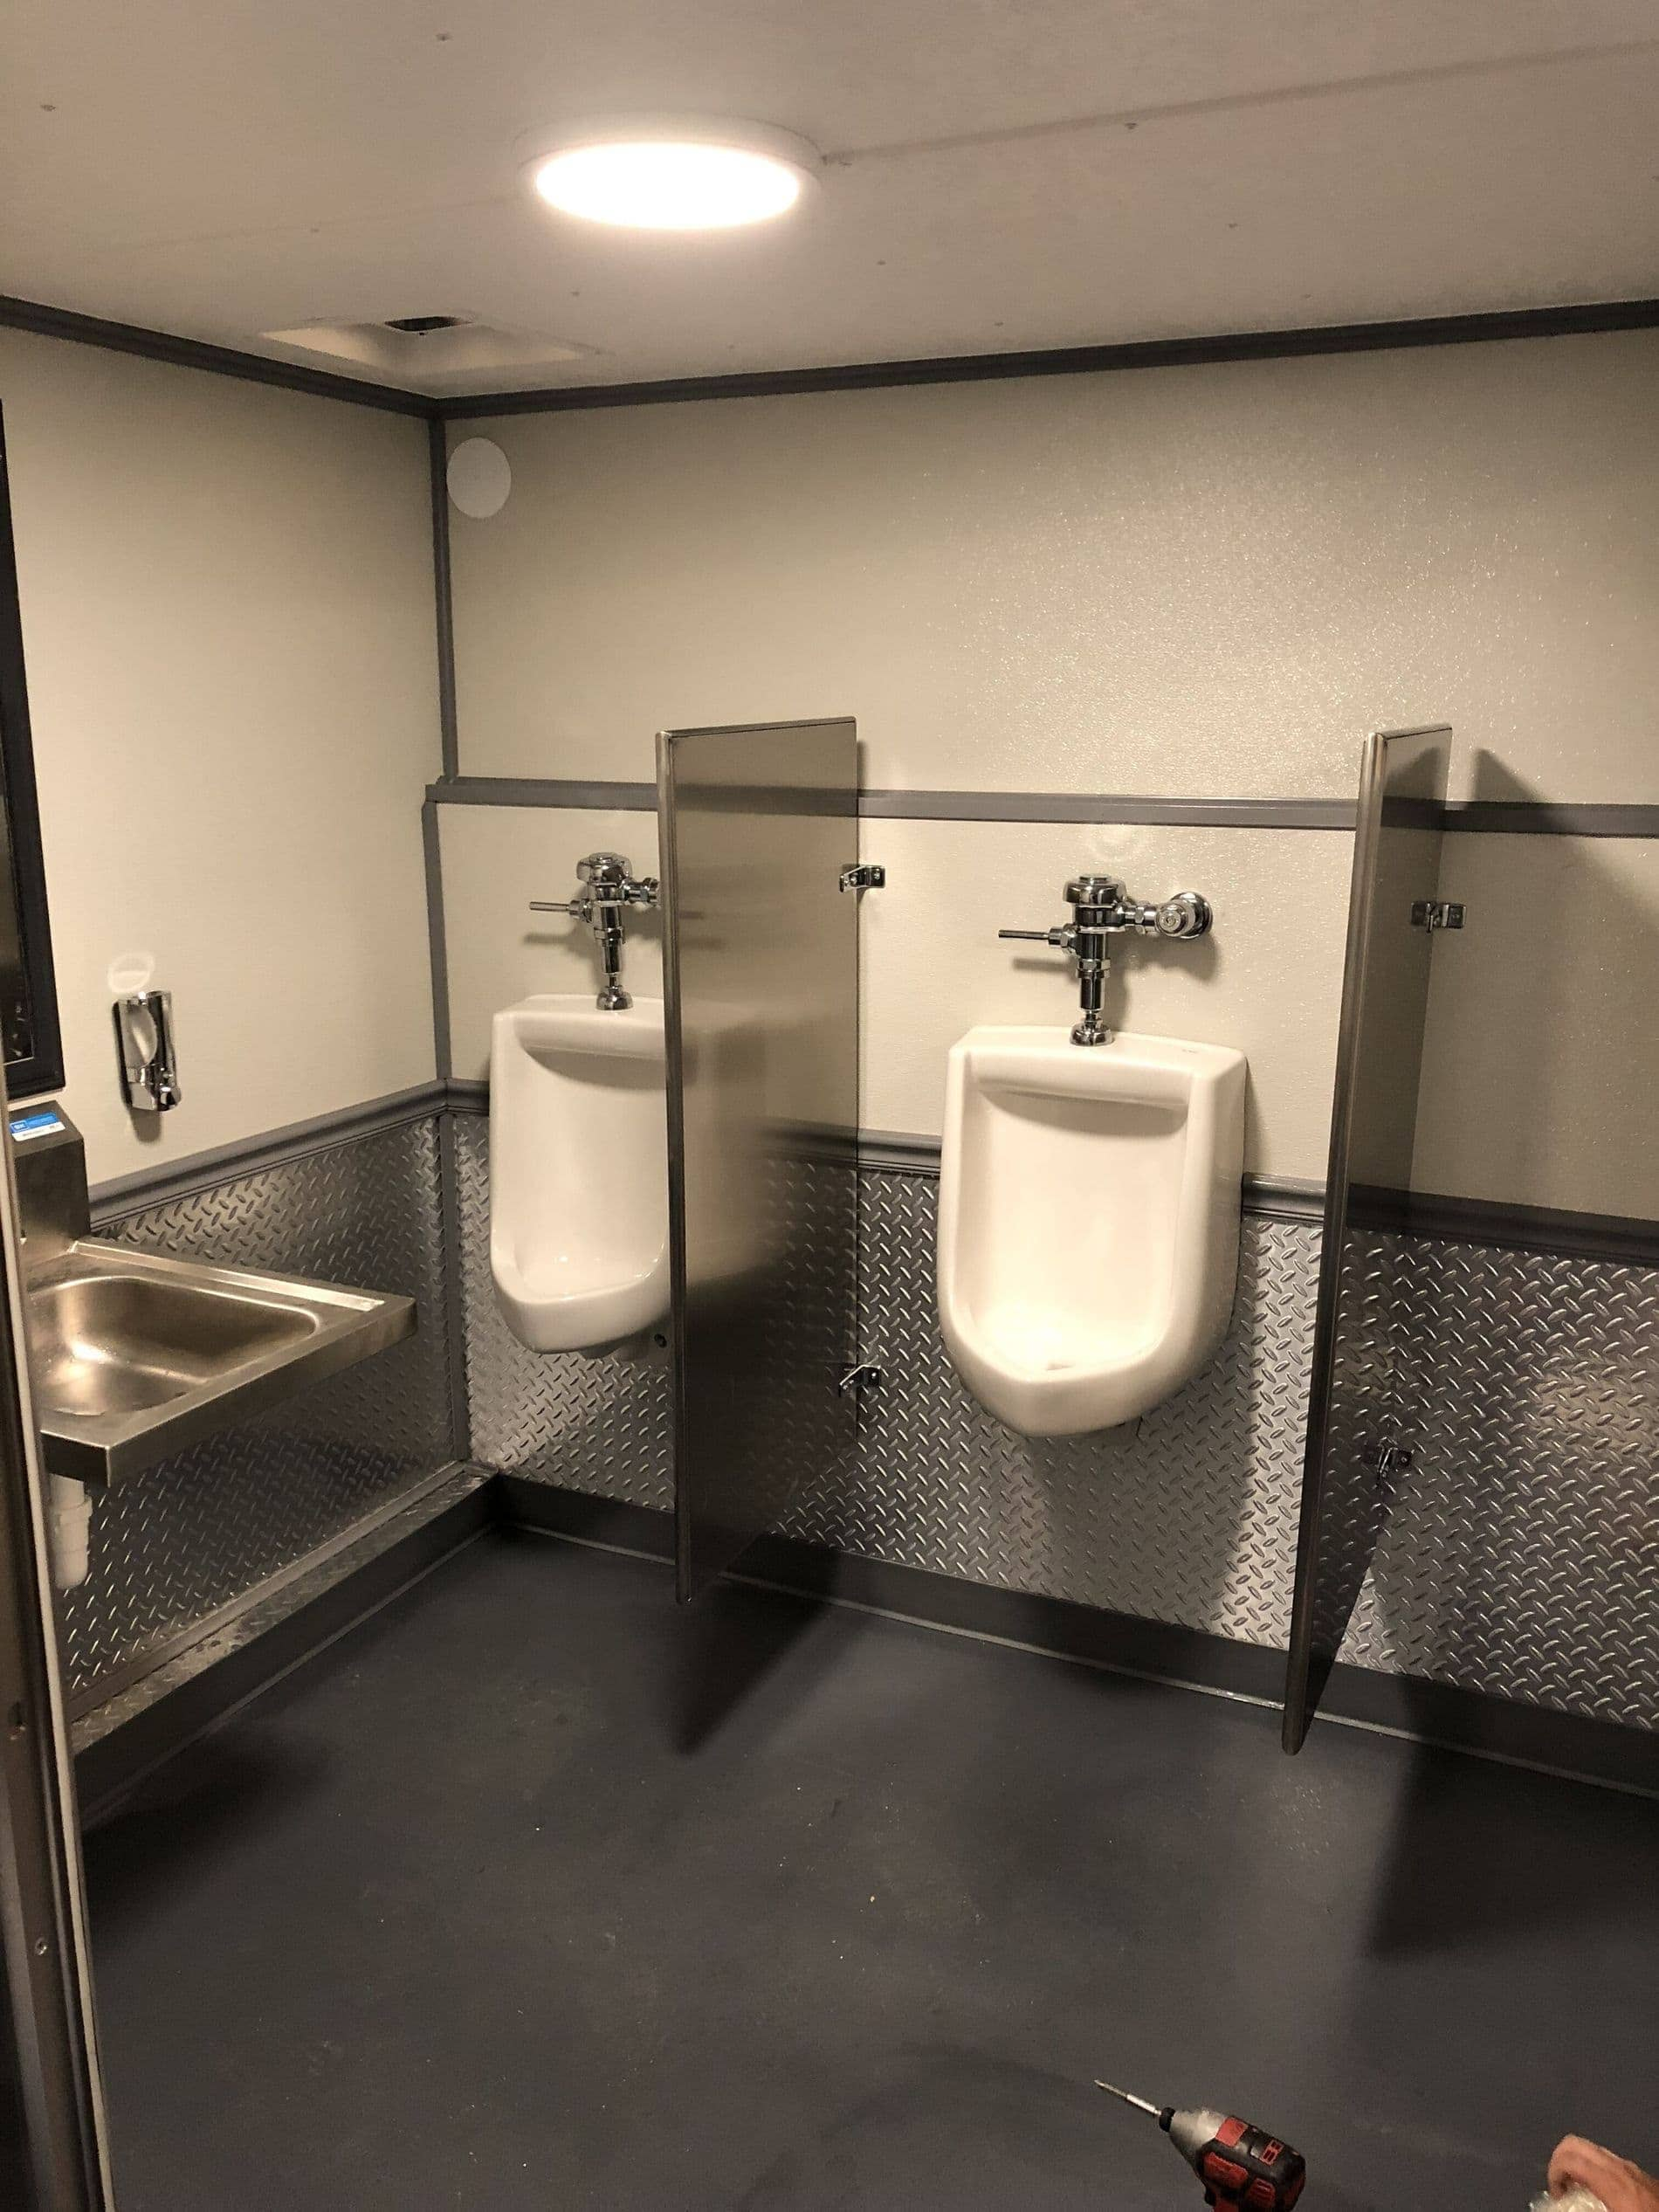 Portable Restroom Trailers For Sale - Portable Bathroom Trailers